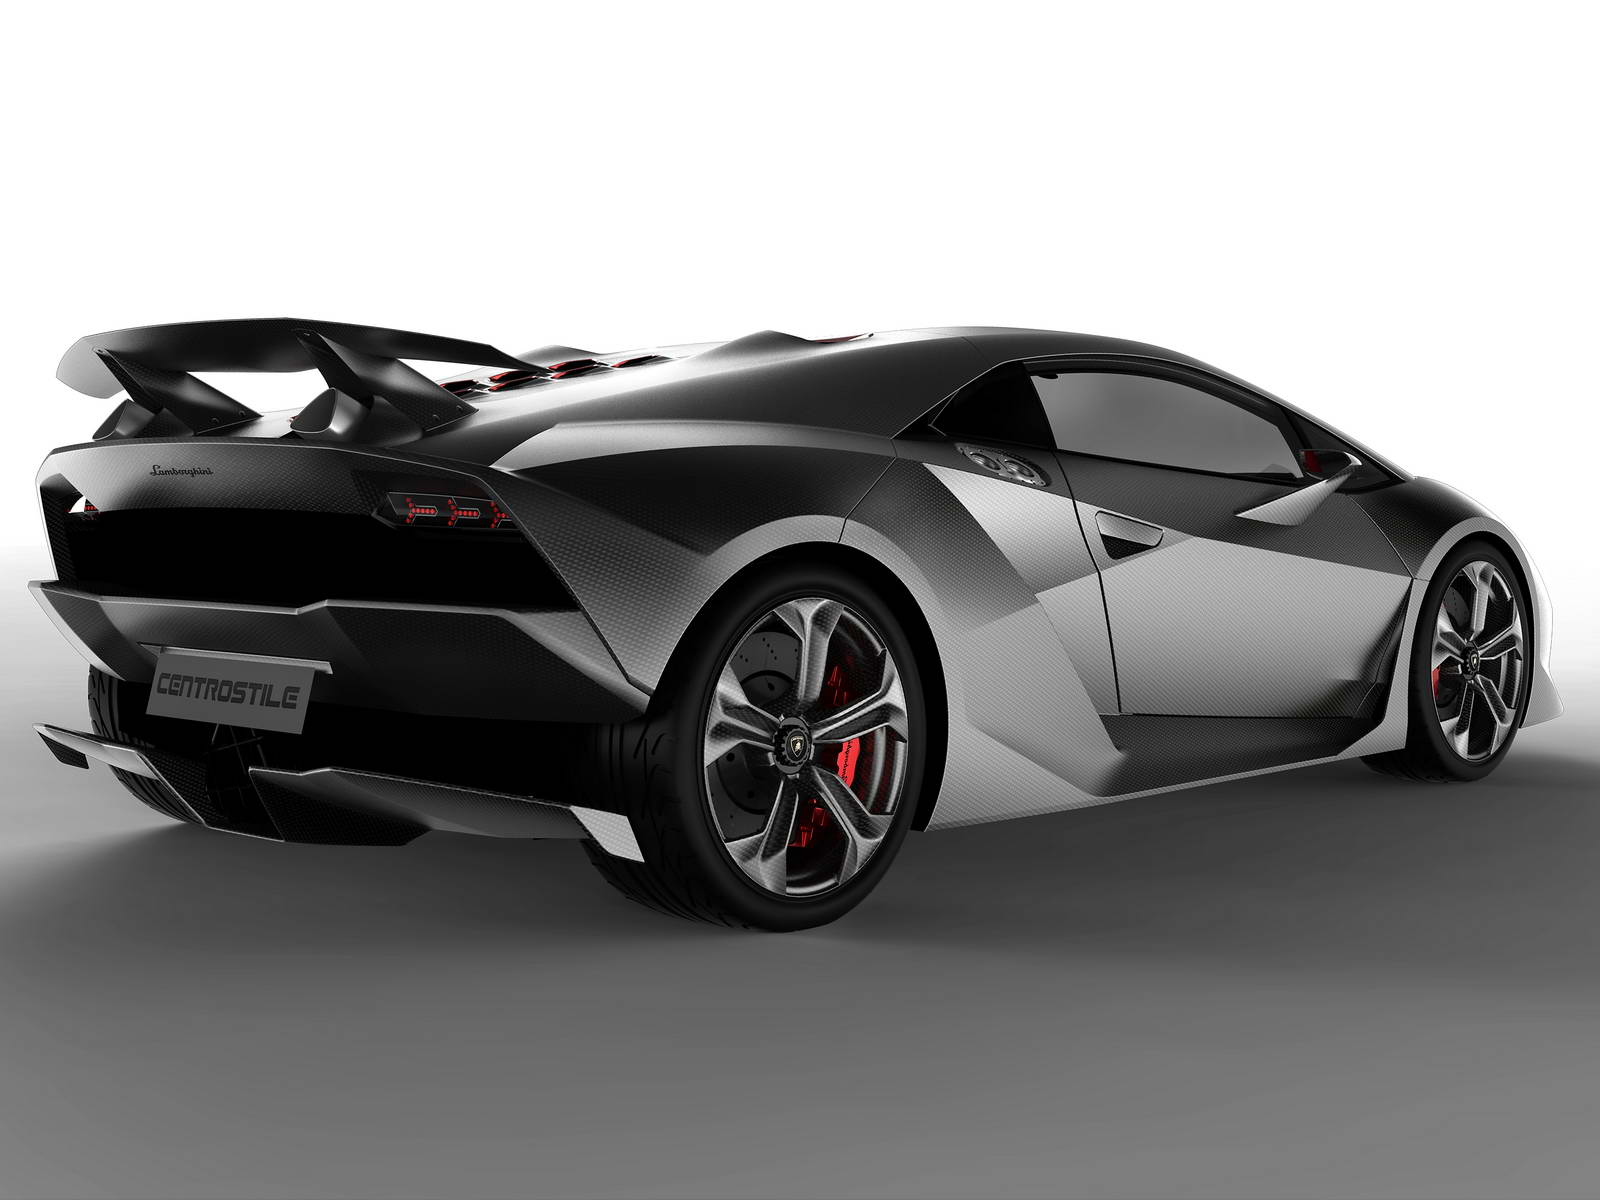 Preview 2011 Hennessey Venom Gt Wvideo moreover Gullwing Set To Land Under 500k as well 2012 A6 besides Peugeot 106 Gti in addition Wallpapers Y Fondos De Autos Deportivos HD. on viper lambo doors